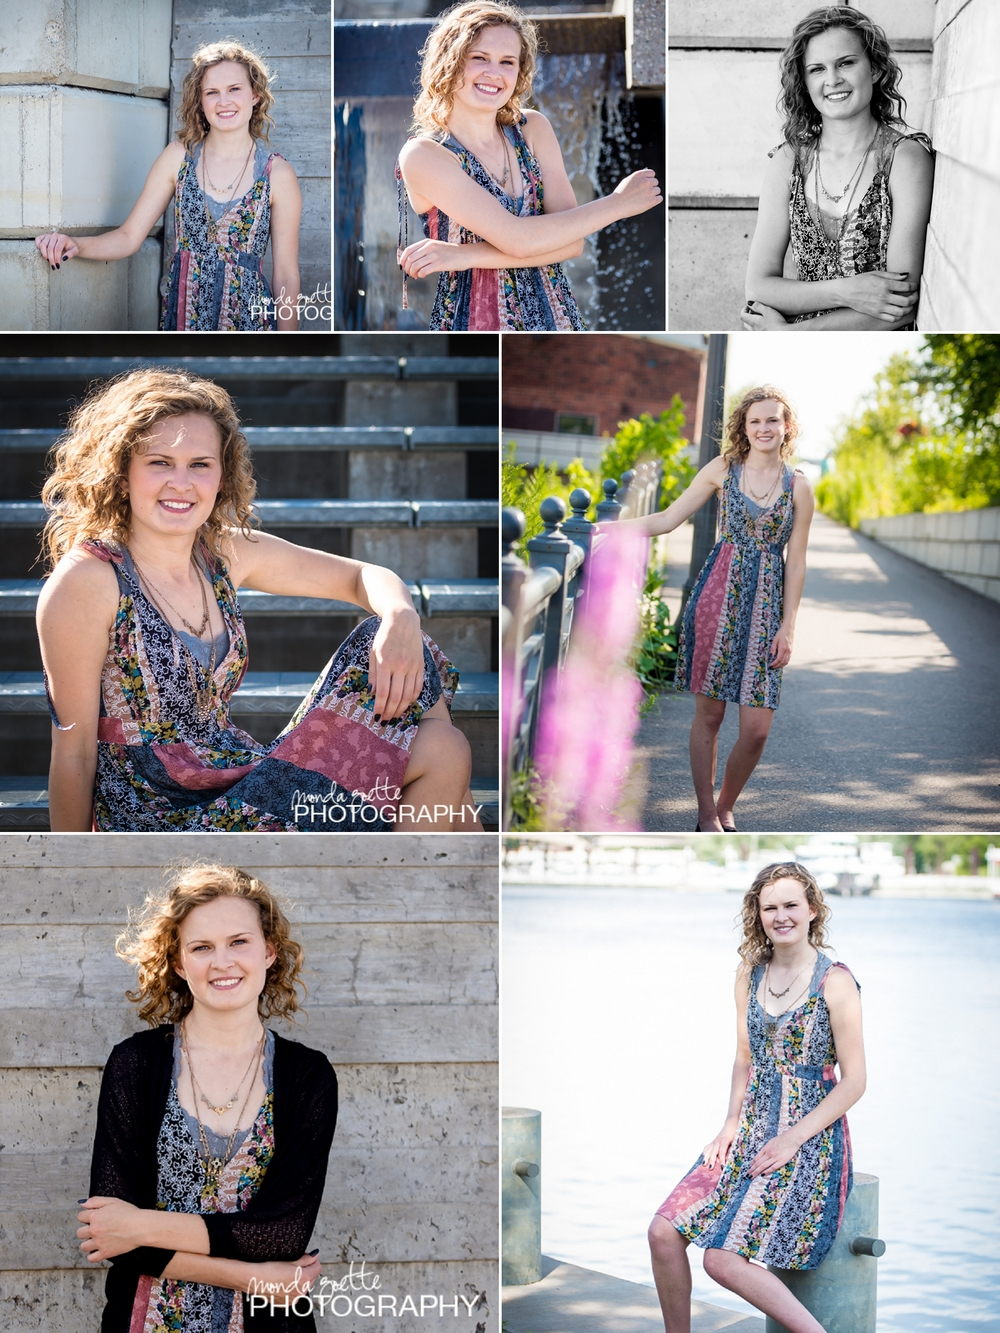 Emma's Model Session - pictured in outfits provided by my partner friends at ApricotLane Boutique in Mendota Heights!